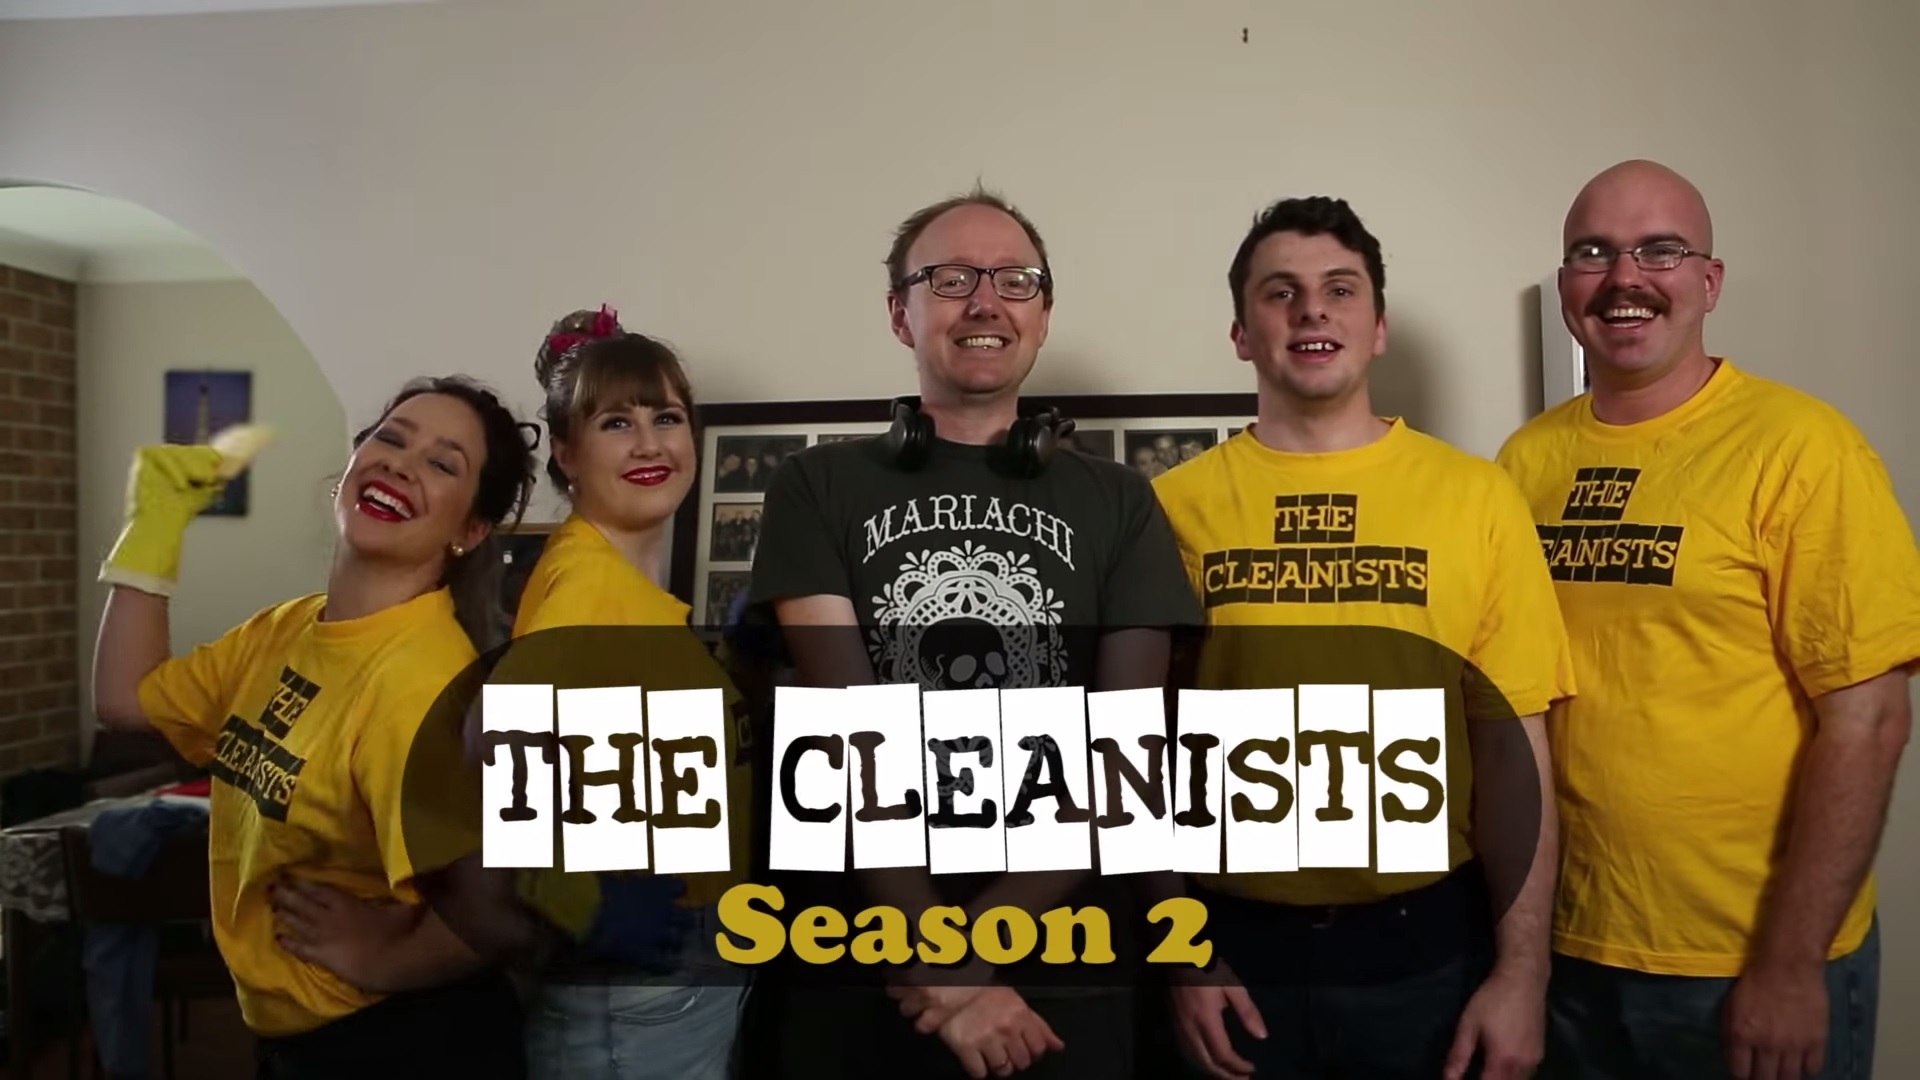 the-cleanists